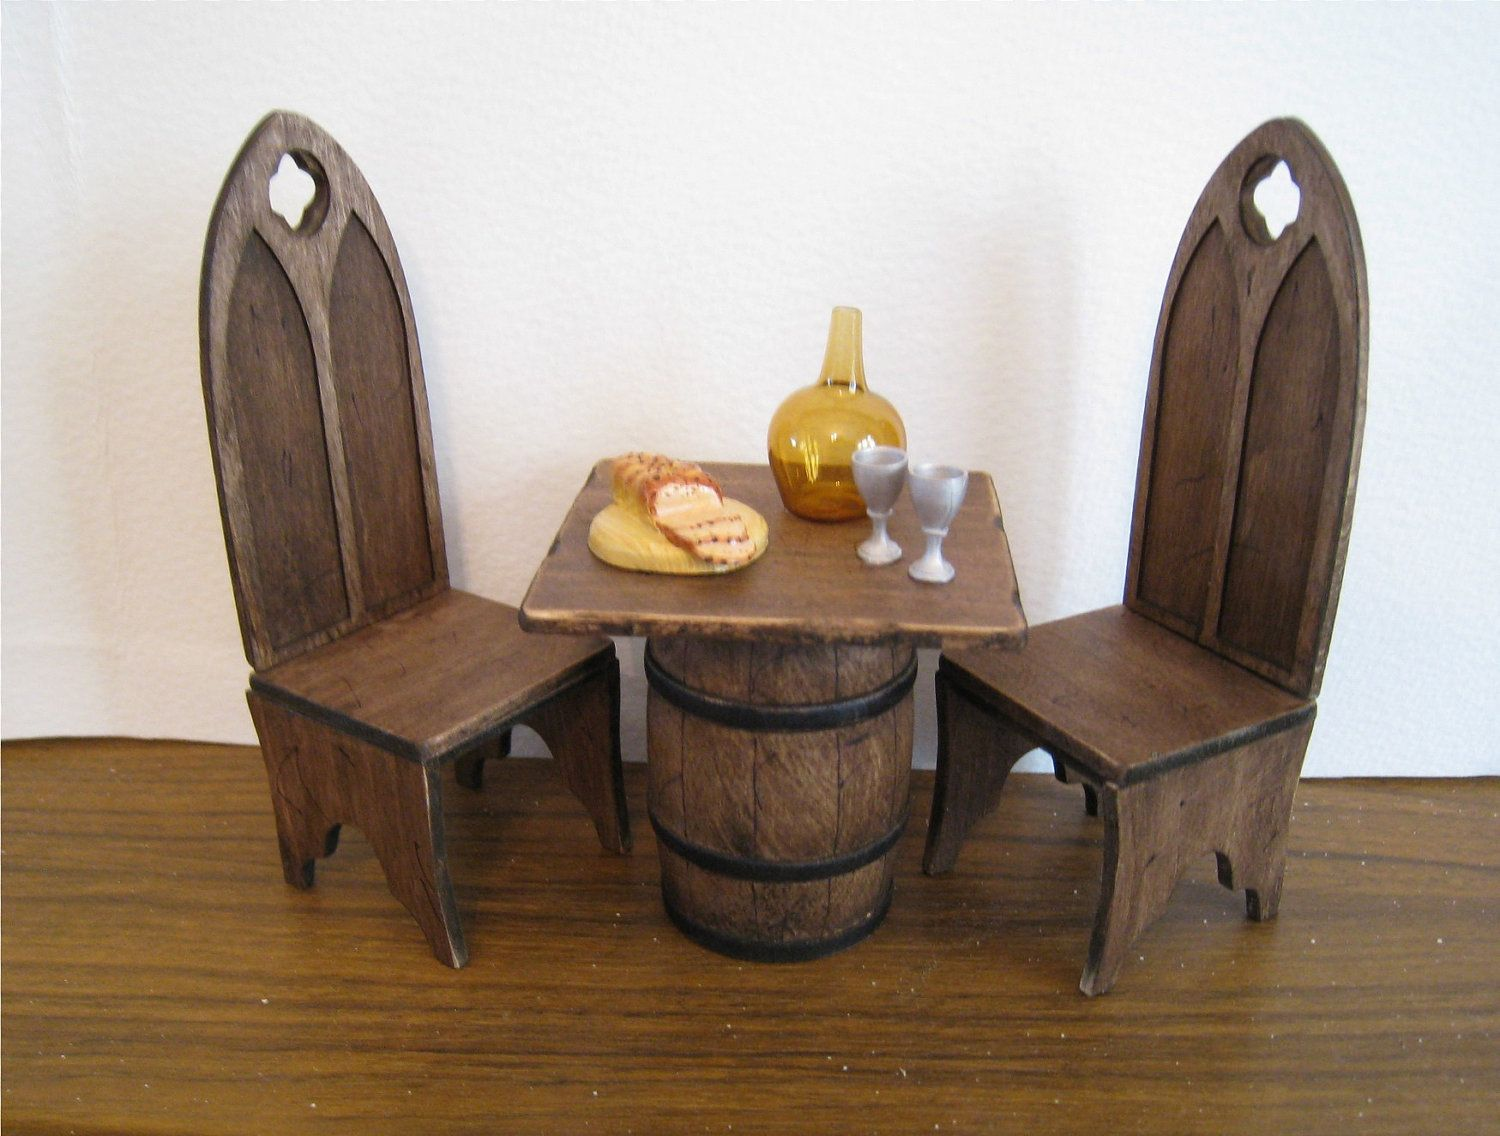 Miniature Tudor Style Pub Table and Chairs | medieval ...